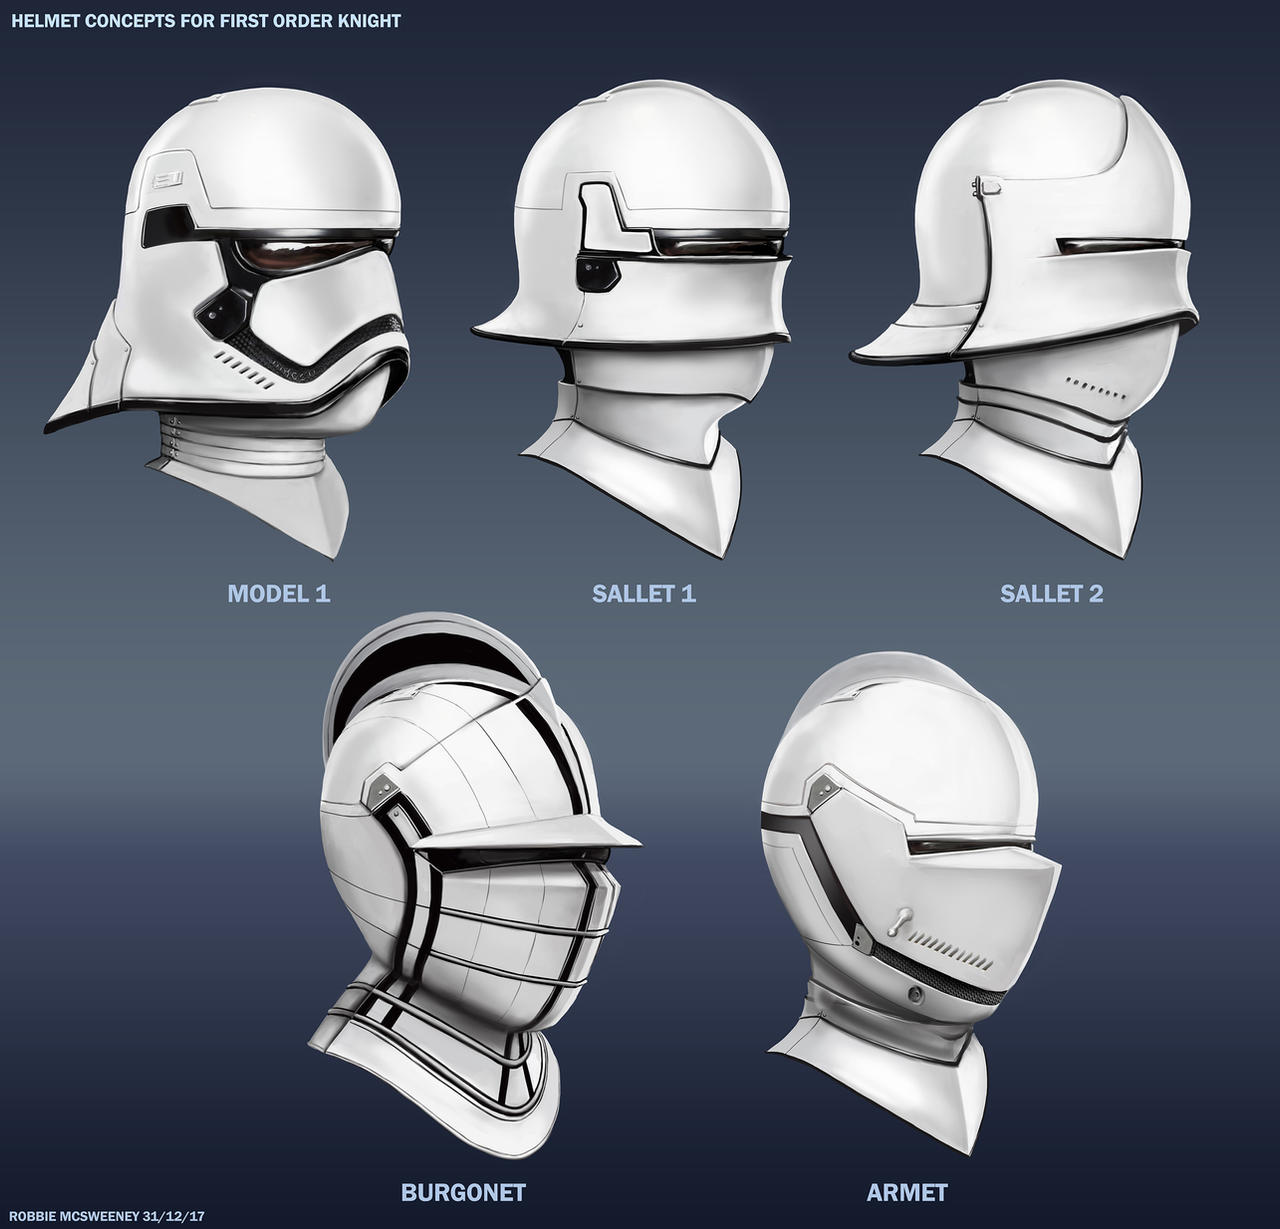 Helmet Concepts for First Order Knight by RobbieMcSweeney on